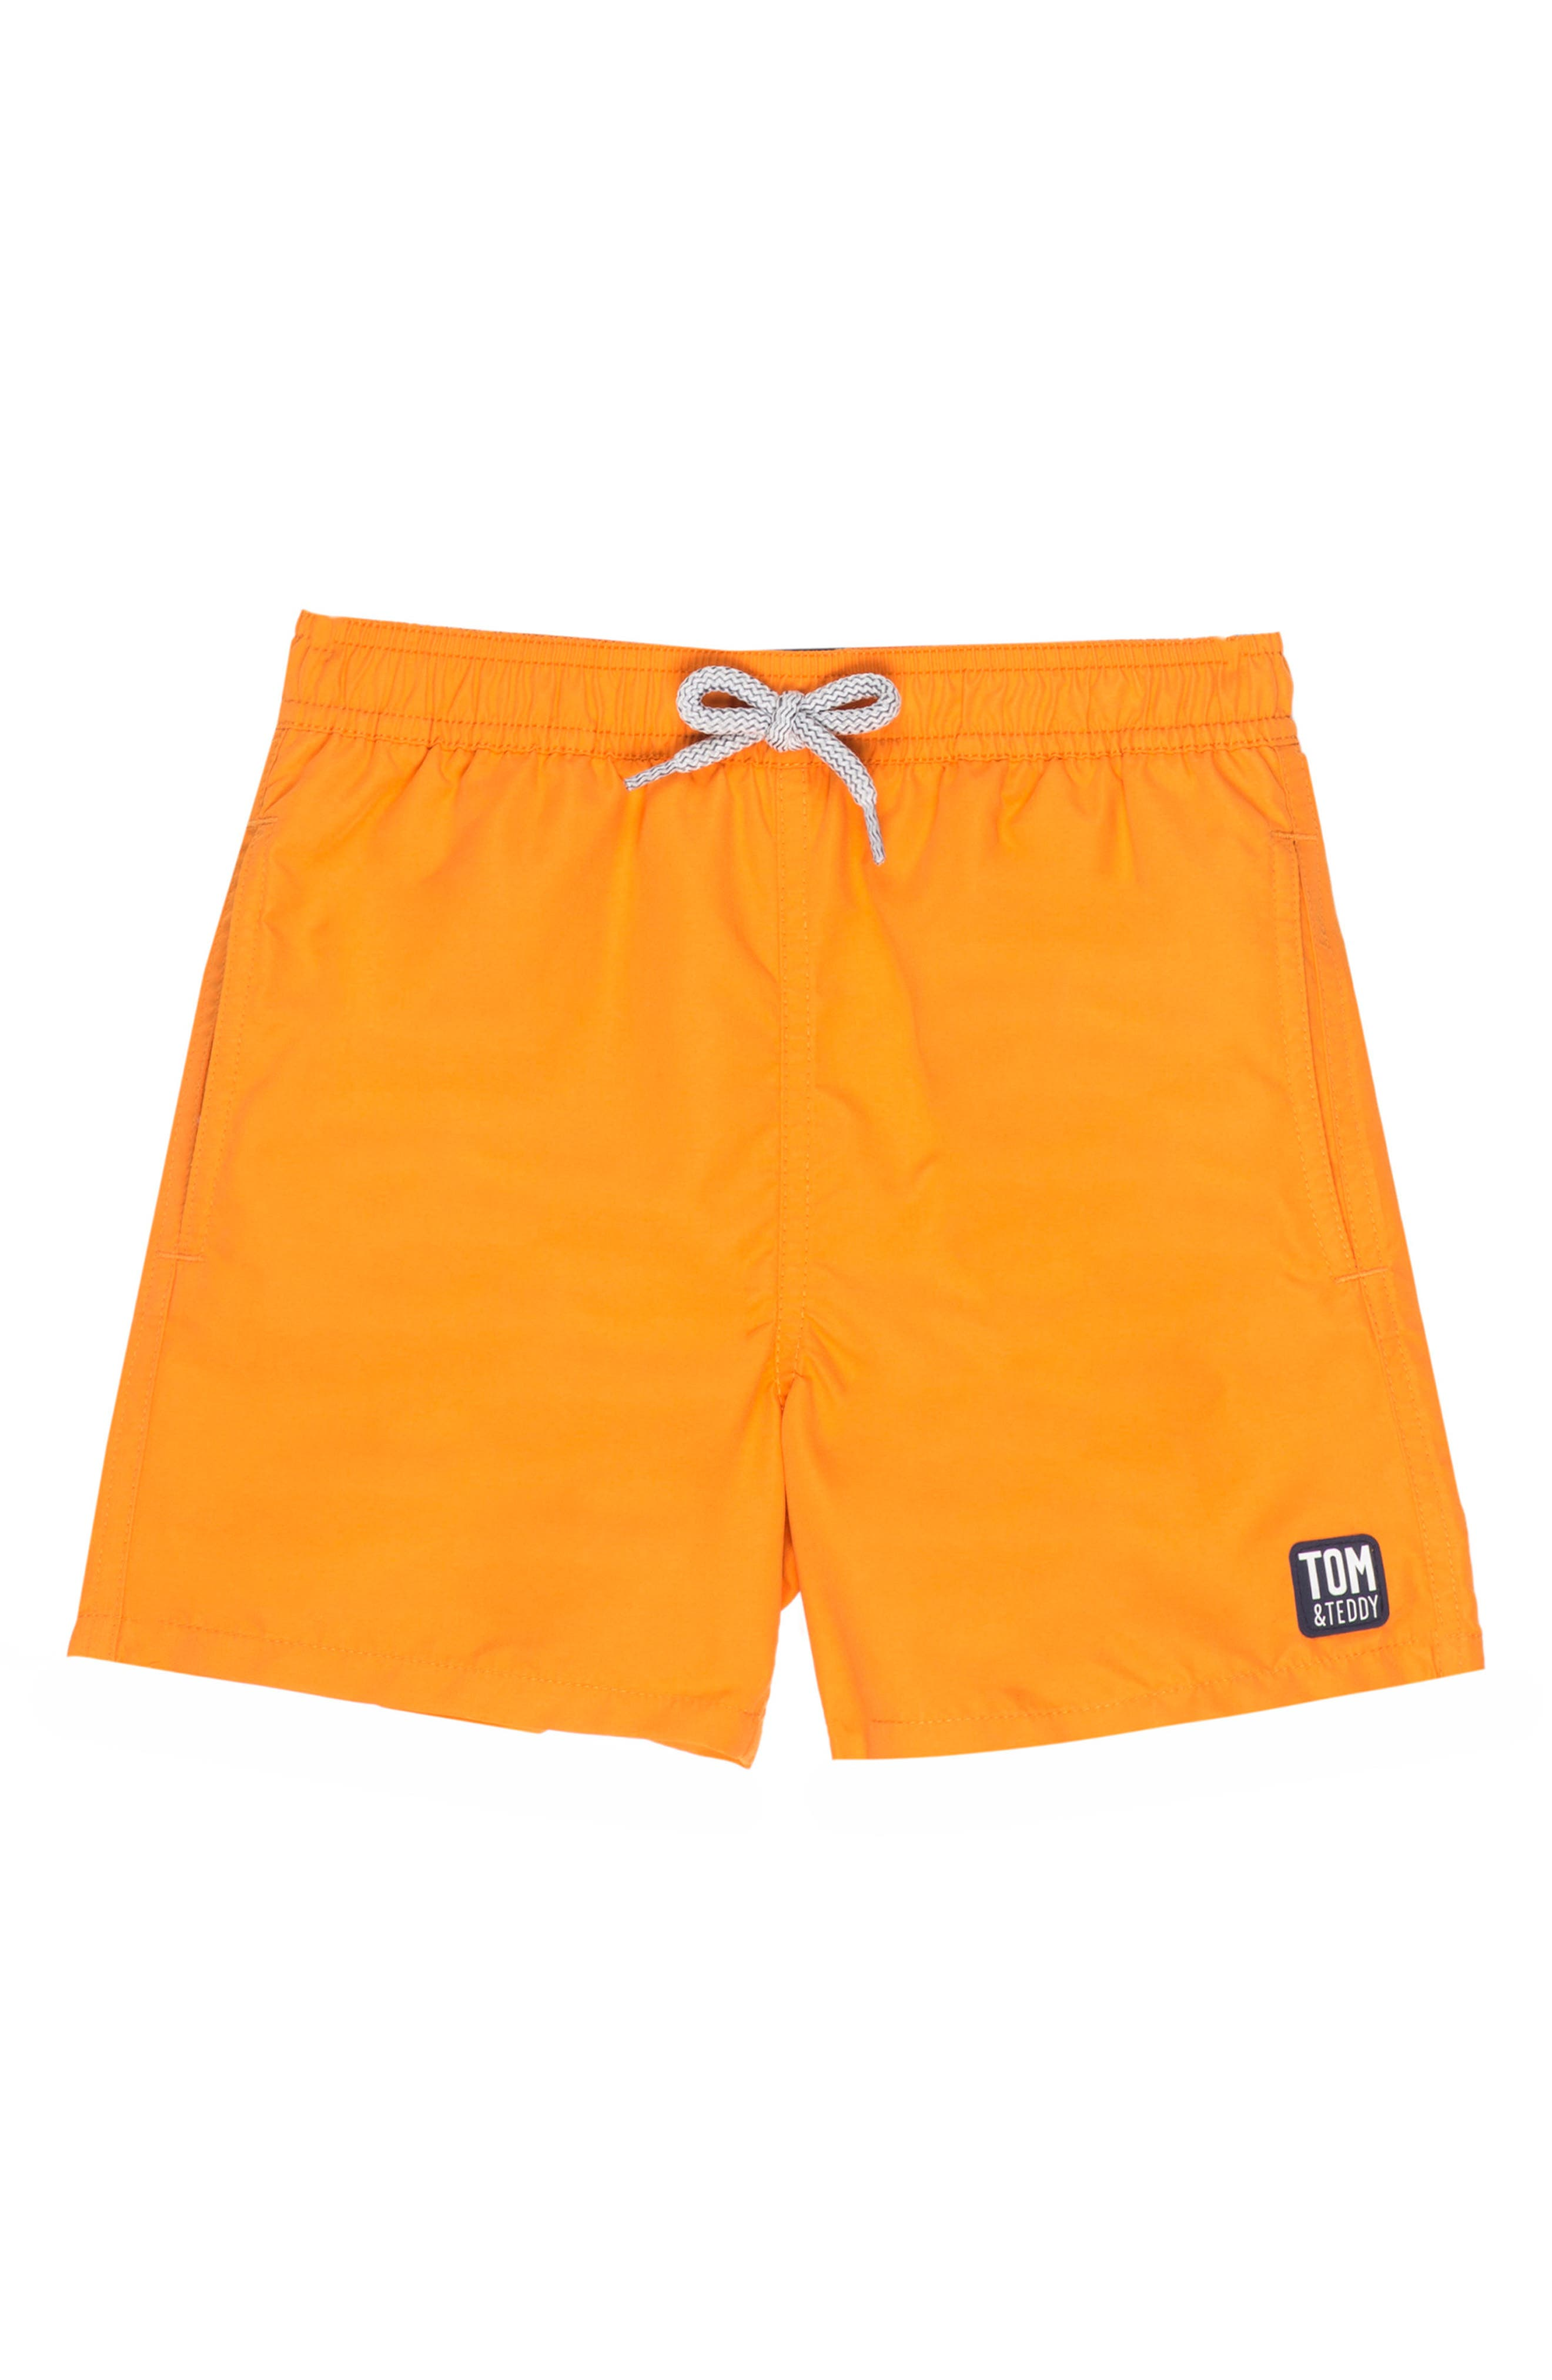 Solid Swim Trunks,                             Alternate thumbnail 2, color,                             BAKED ORANGE